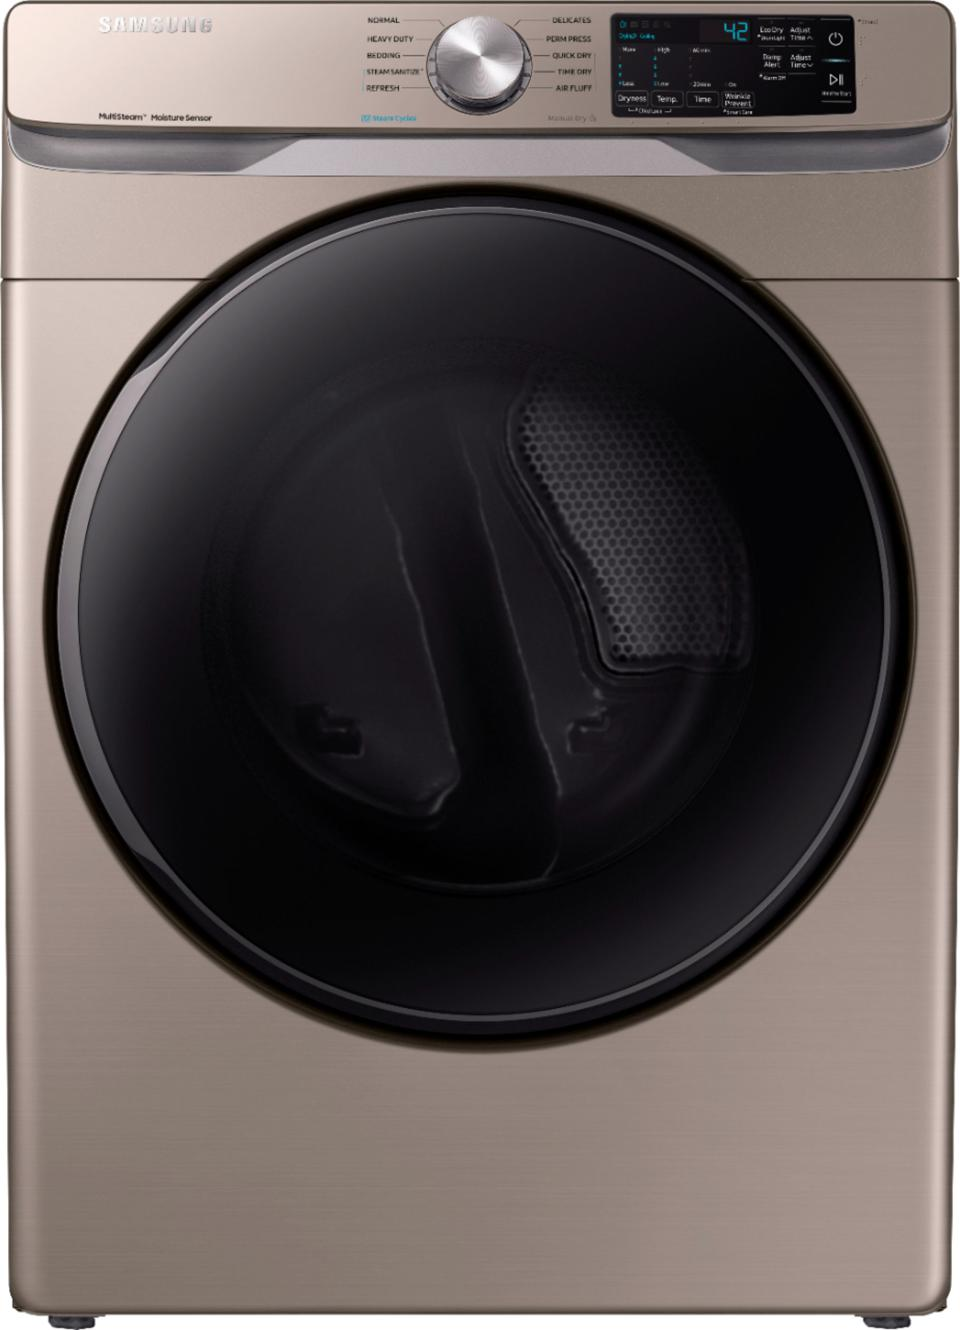 Samsung - 7.5 Cu. Ft. 10-Cycle Electric Dryer with Steam - Champagne